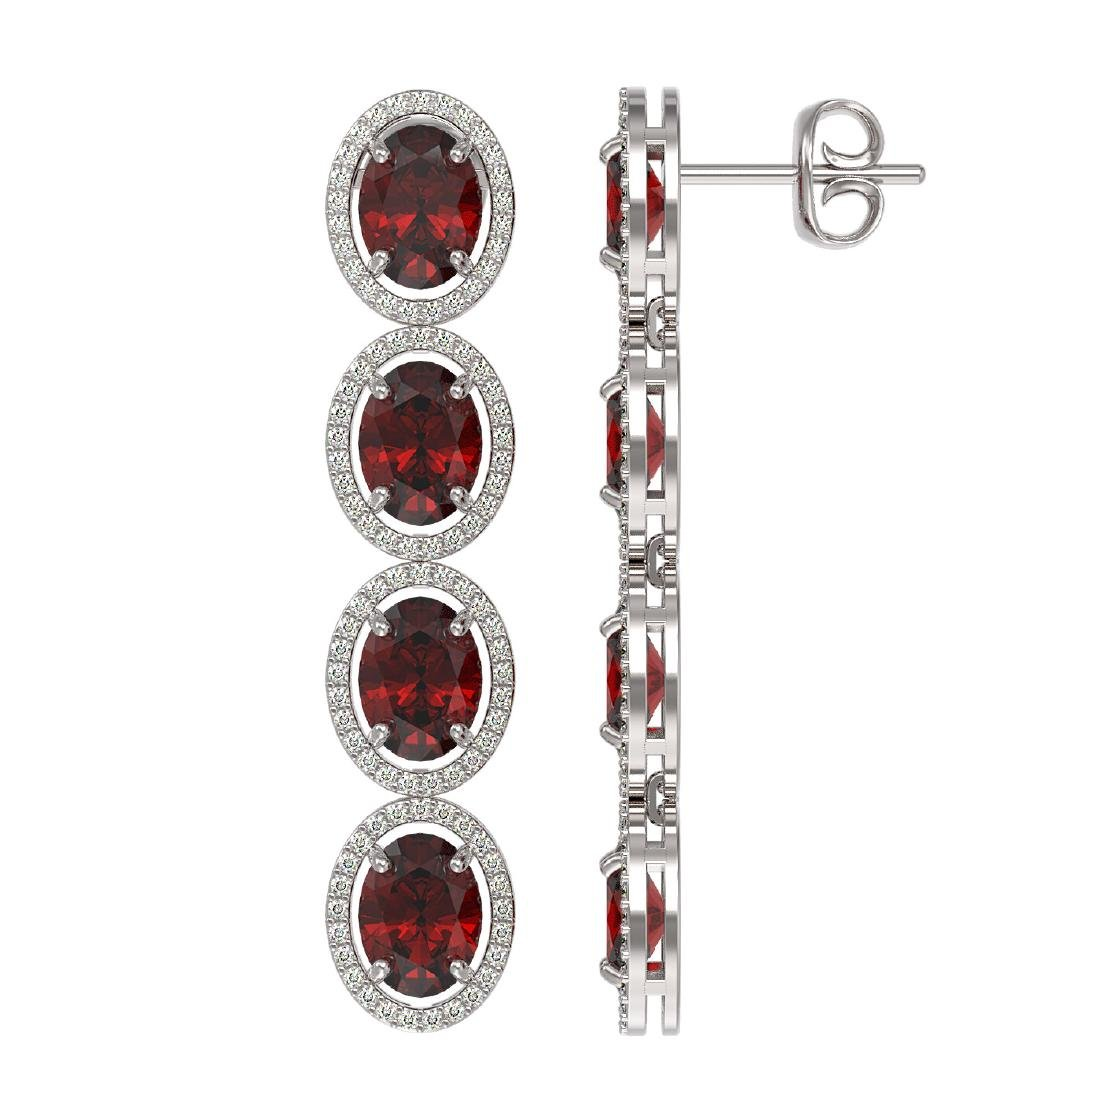 13.64 CTW Garnet & Diamond Halo Earrings 10K White Gold